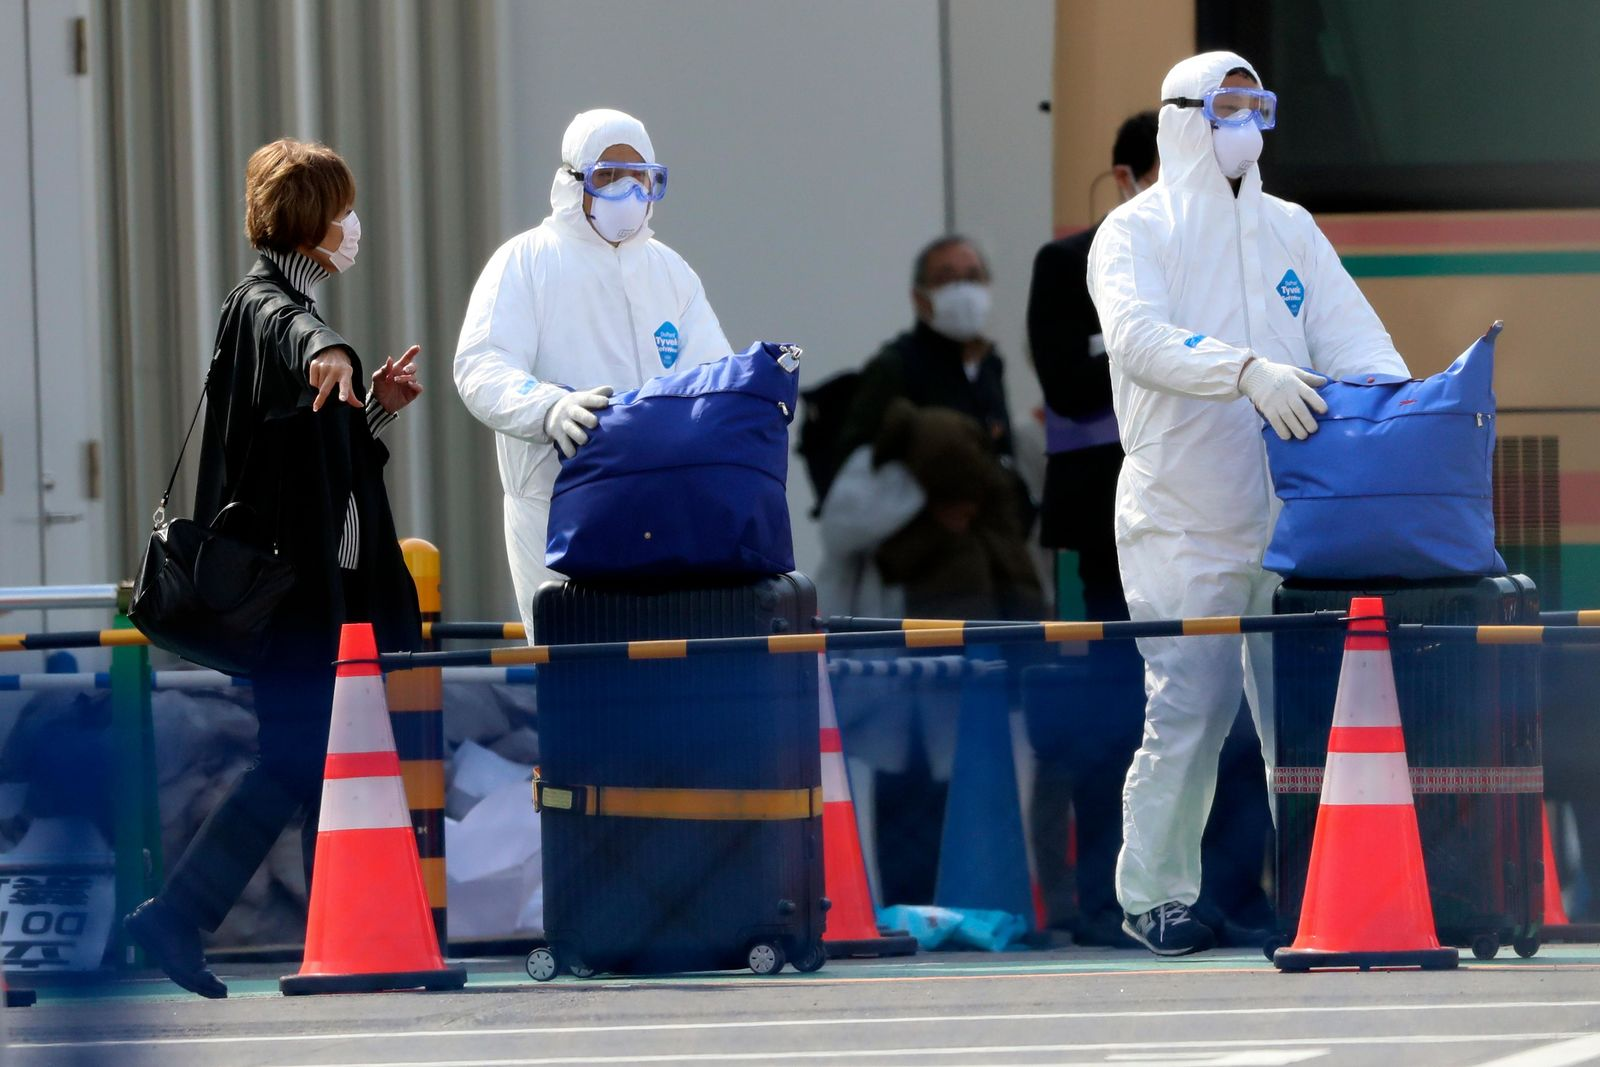 Officials in protective suits help a passenger disembarked from the quarantined Diamond Princess cruise ship anchored at a port in Yokohama, near Tokyo, Thursday, Feb. 20, 2020.{ } (AP Photo/Eugene Hoshiko)